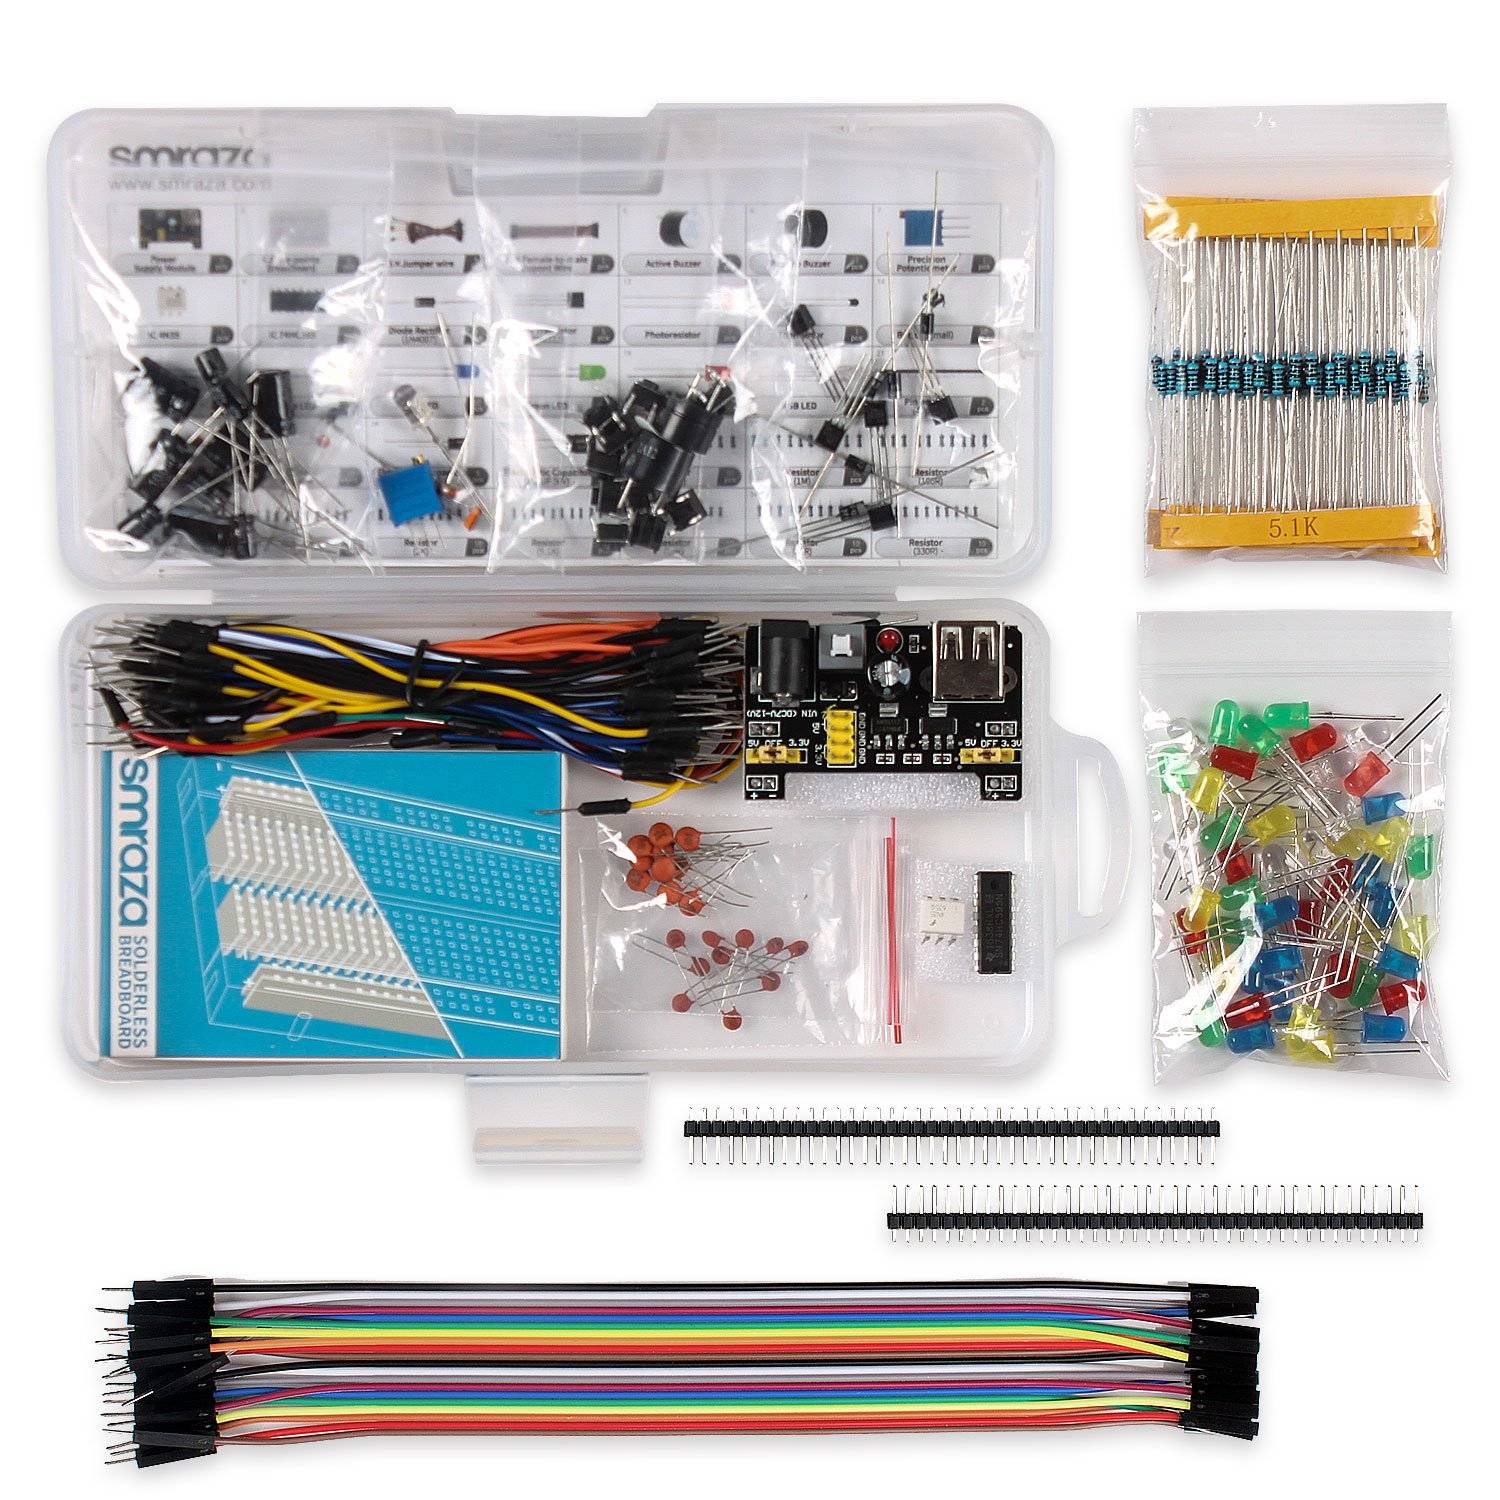 Smraza Basic Starter Kit With Breadboardpower Supplyjumper Wires Topic Rgb Led Driver Circuit Works But Resistor Gets Hot Read 1 Wiresresistors For Arduino Uno R3mega2560nanoraspberry Pi Computers